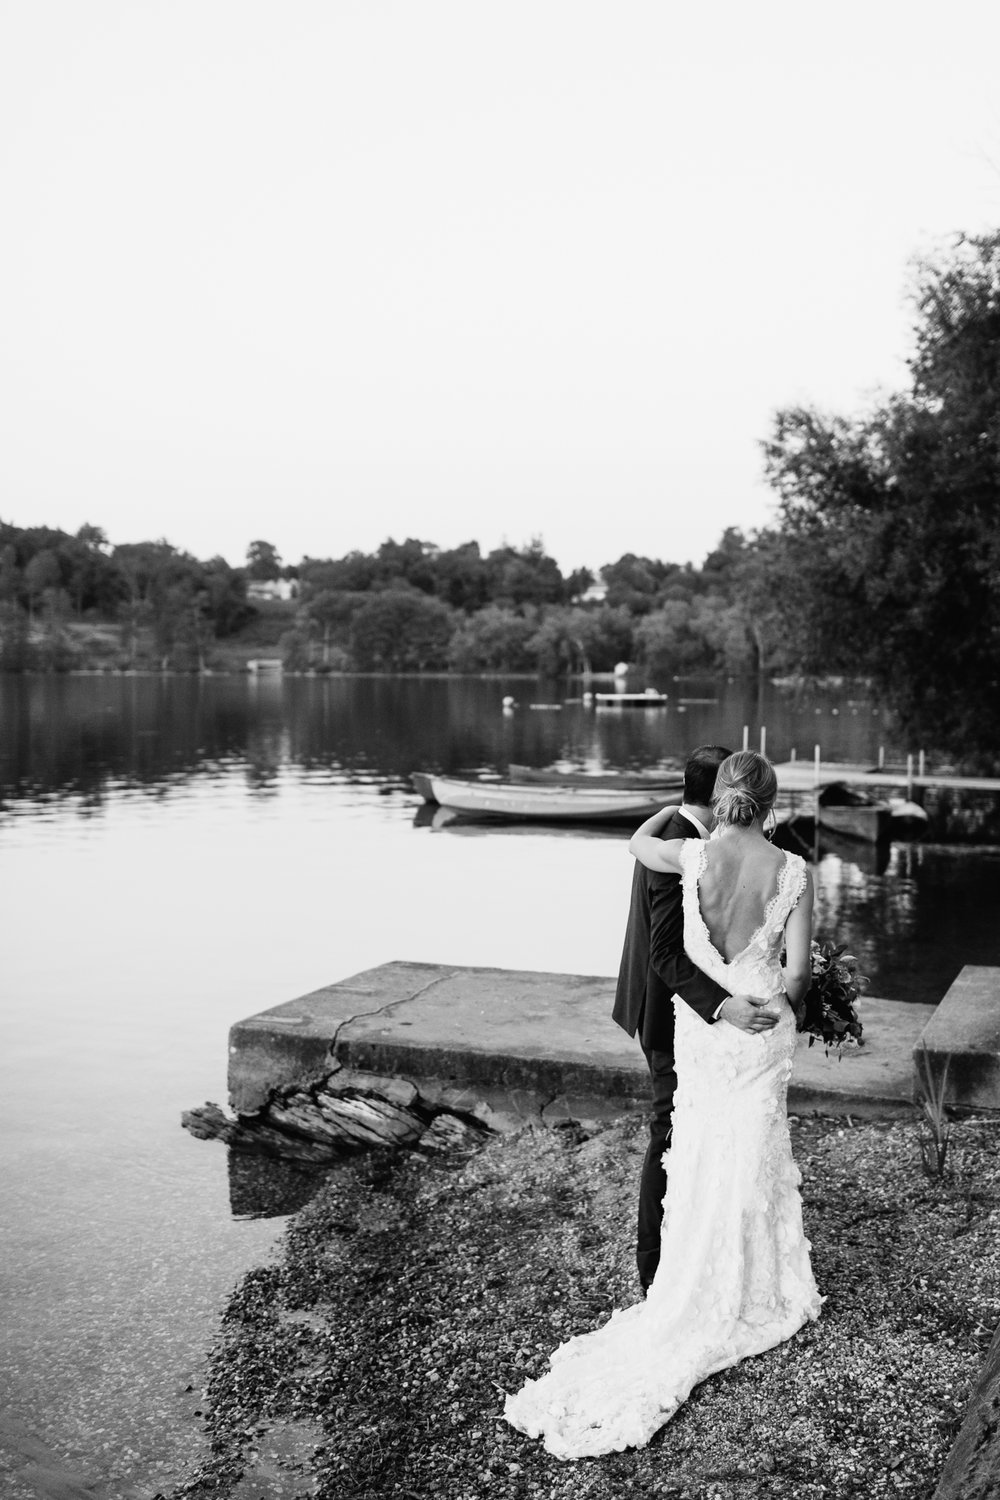 connecticut-summer-lake-wedding-emily-kirke-photography-upstyle (155 of 181).jpg